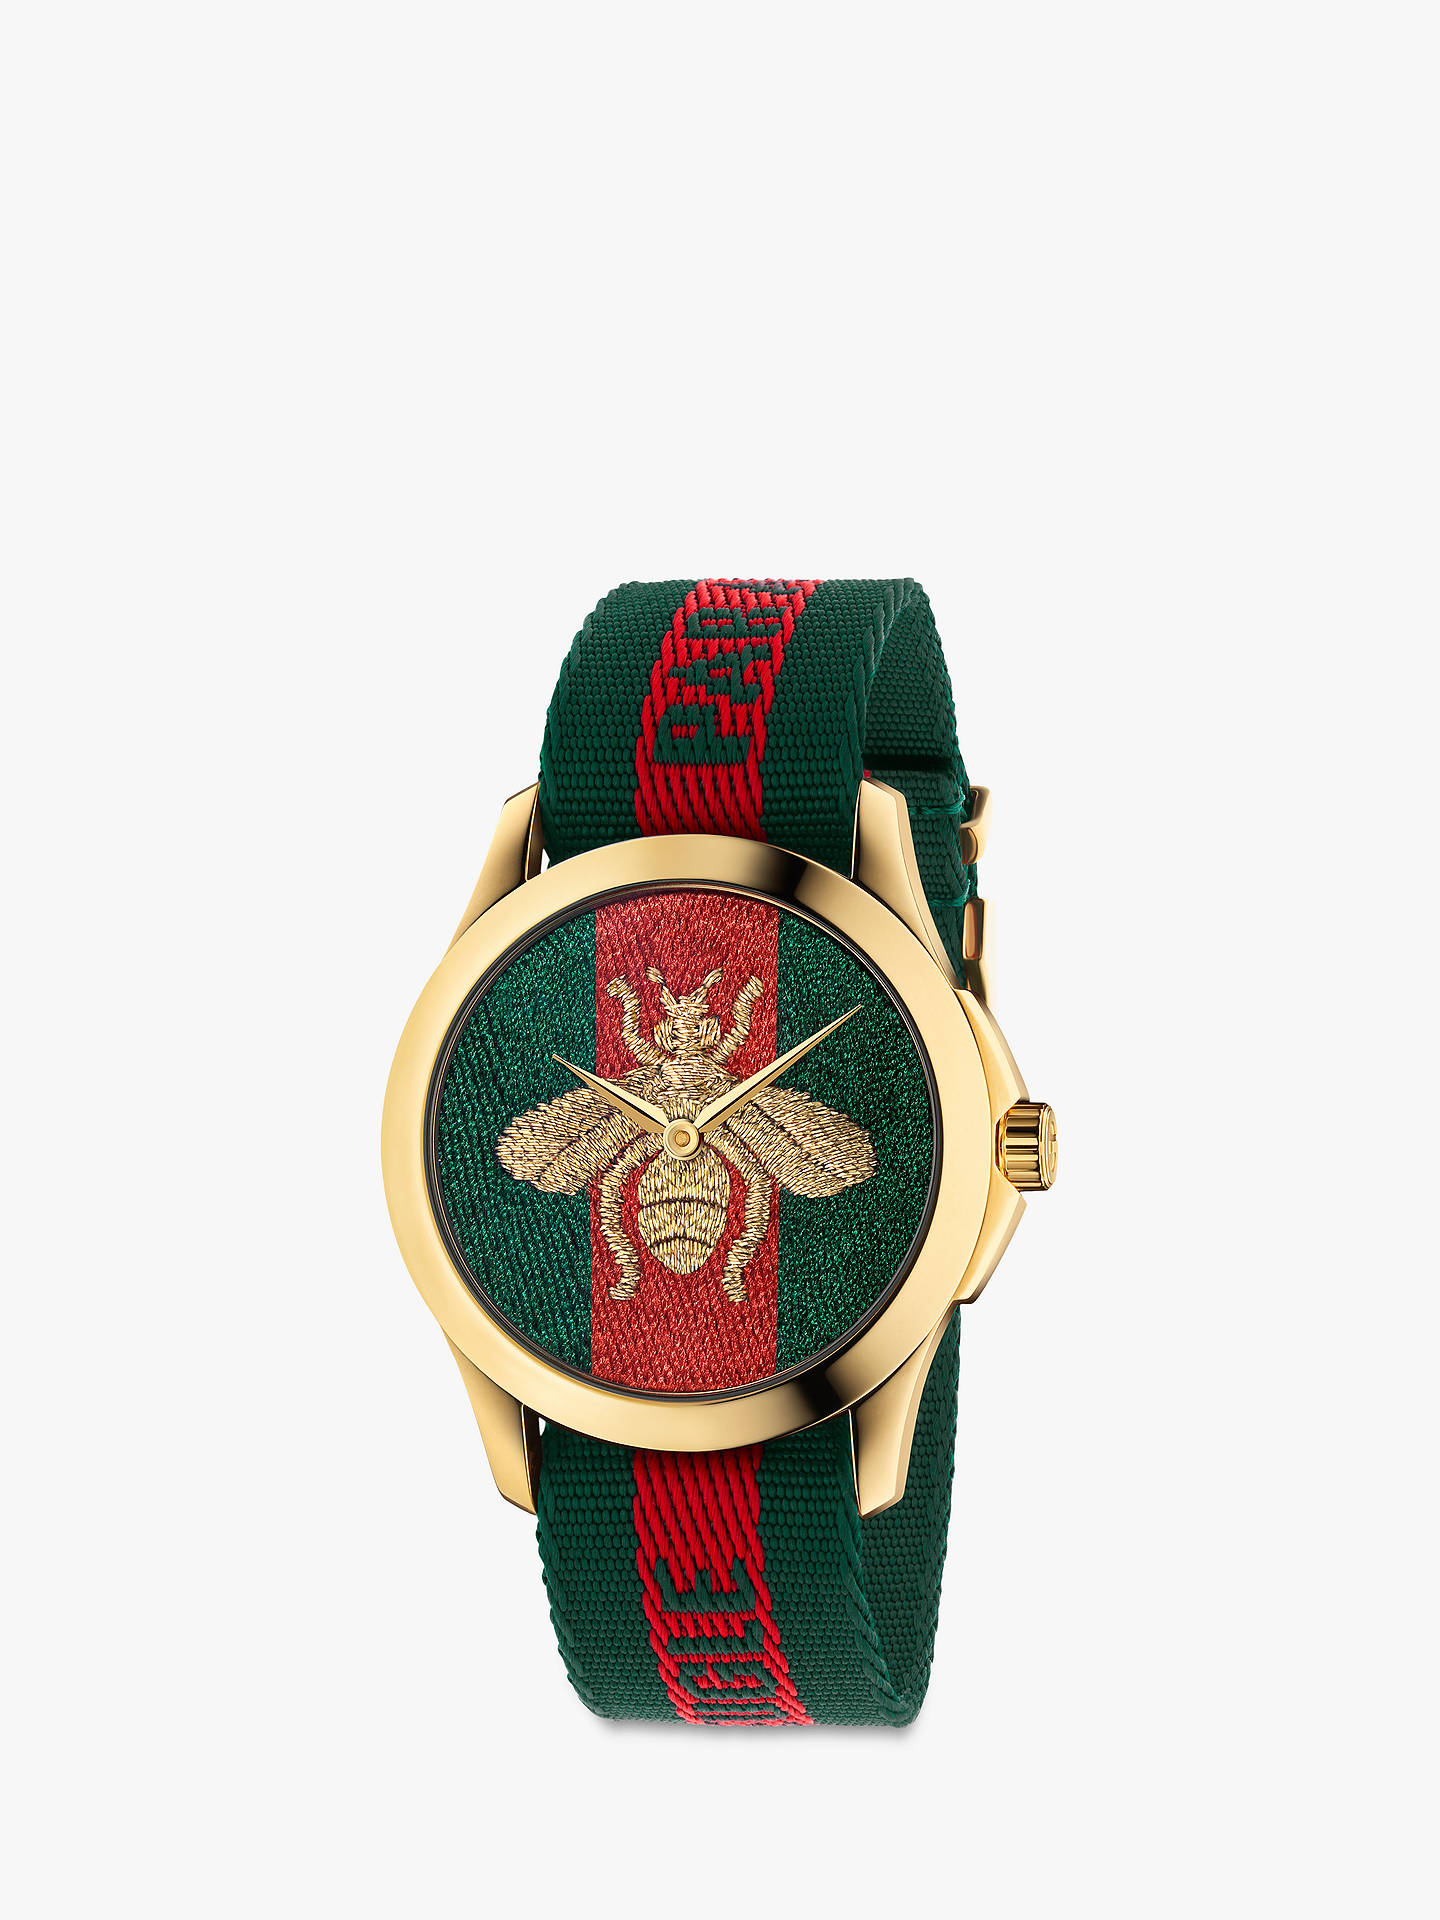 aec22882a Buy Gucci YA126487 Unisex Le Marché des Merveilles Fabric Strap Watch, Red/ Green Online ...